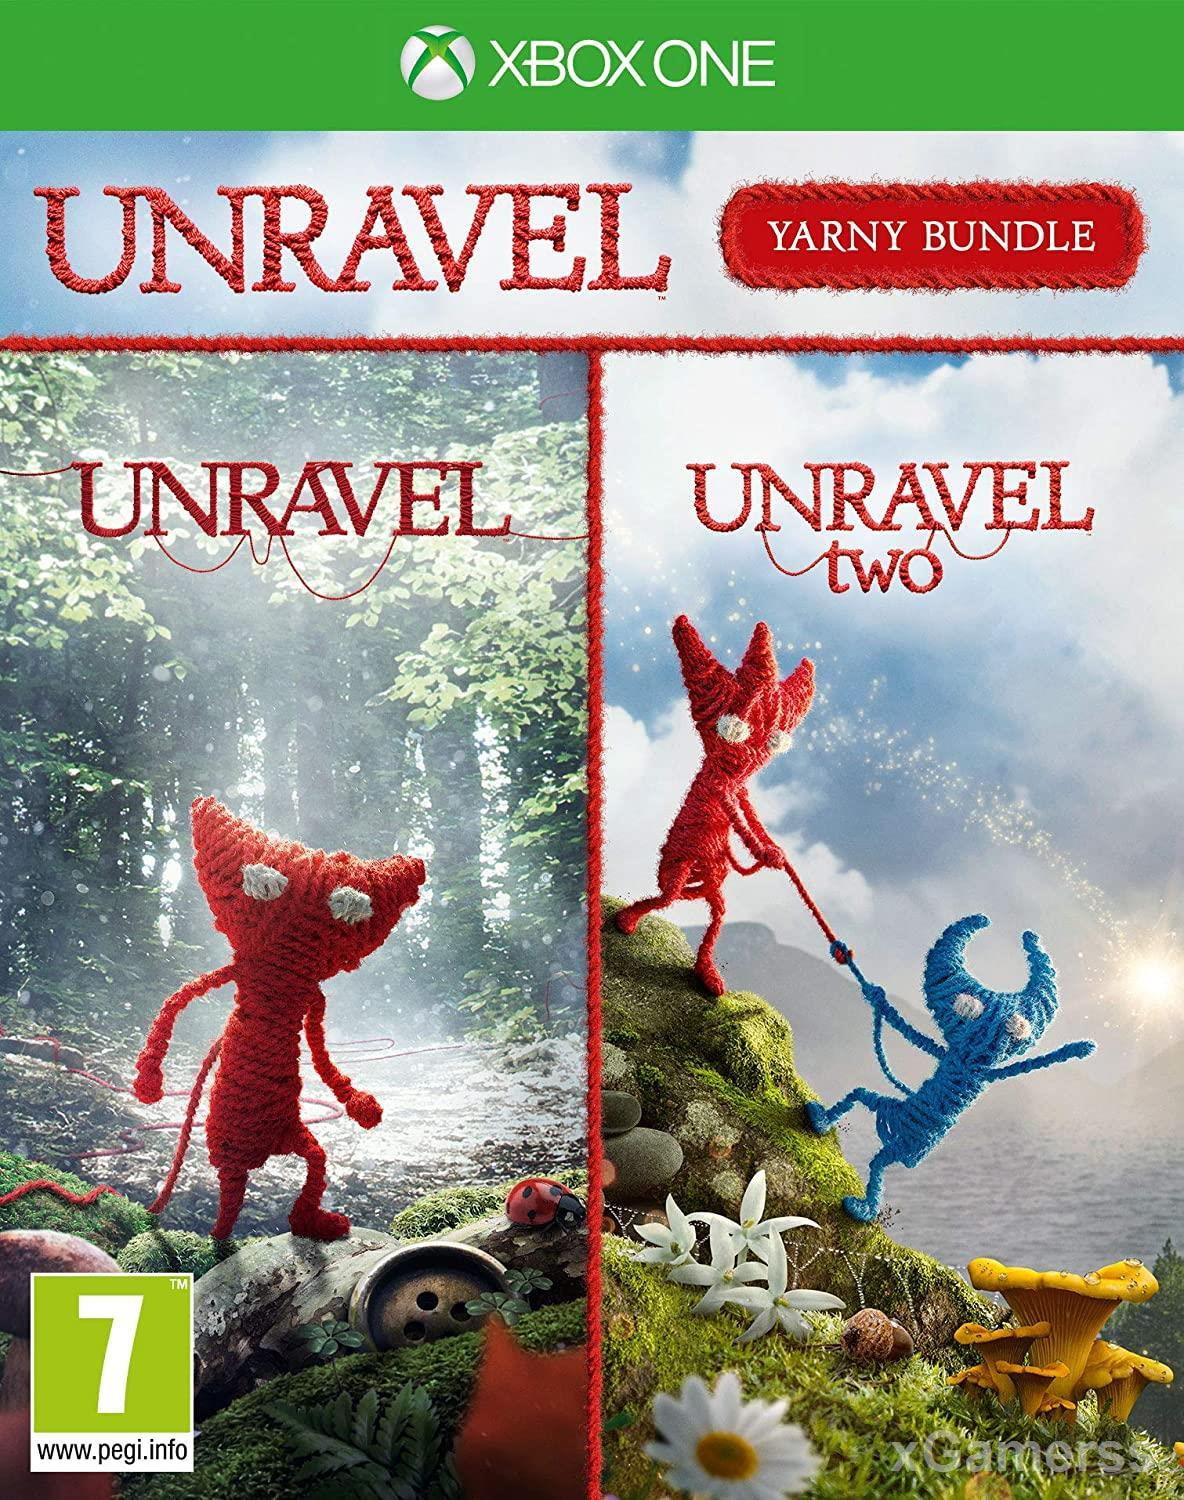 Unravel two - one of the best Coop games